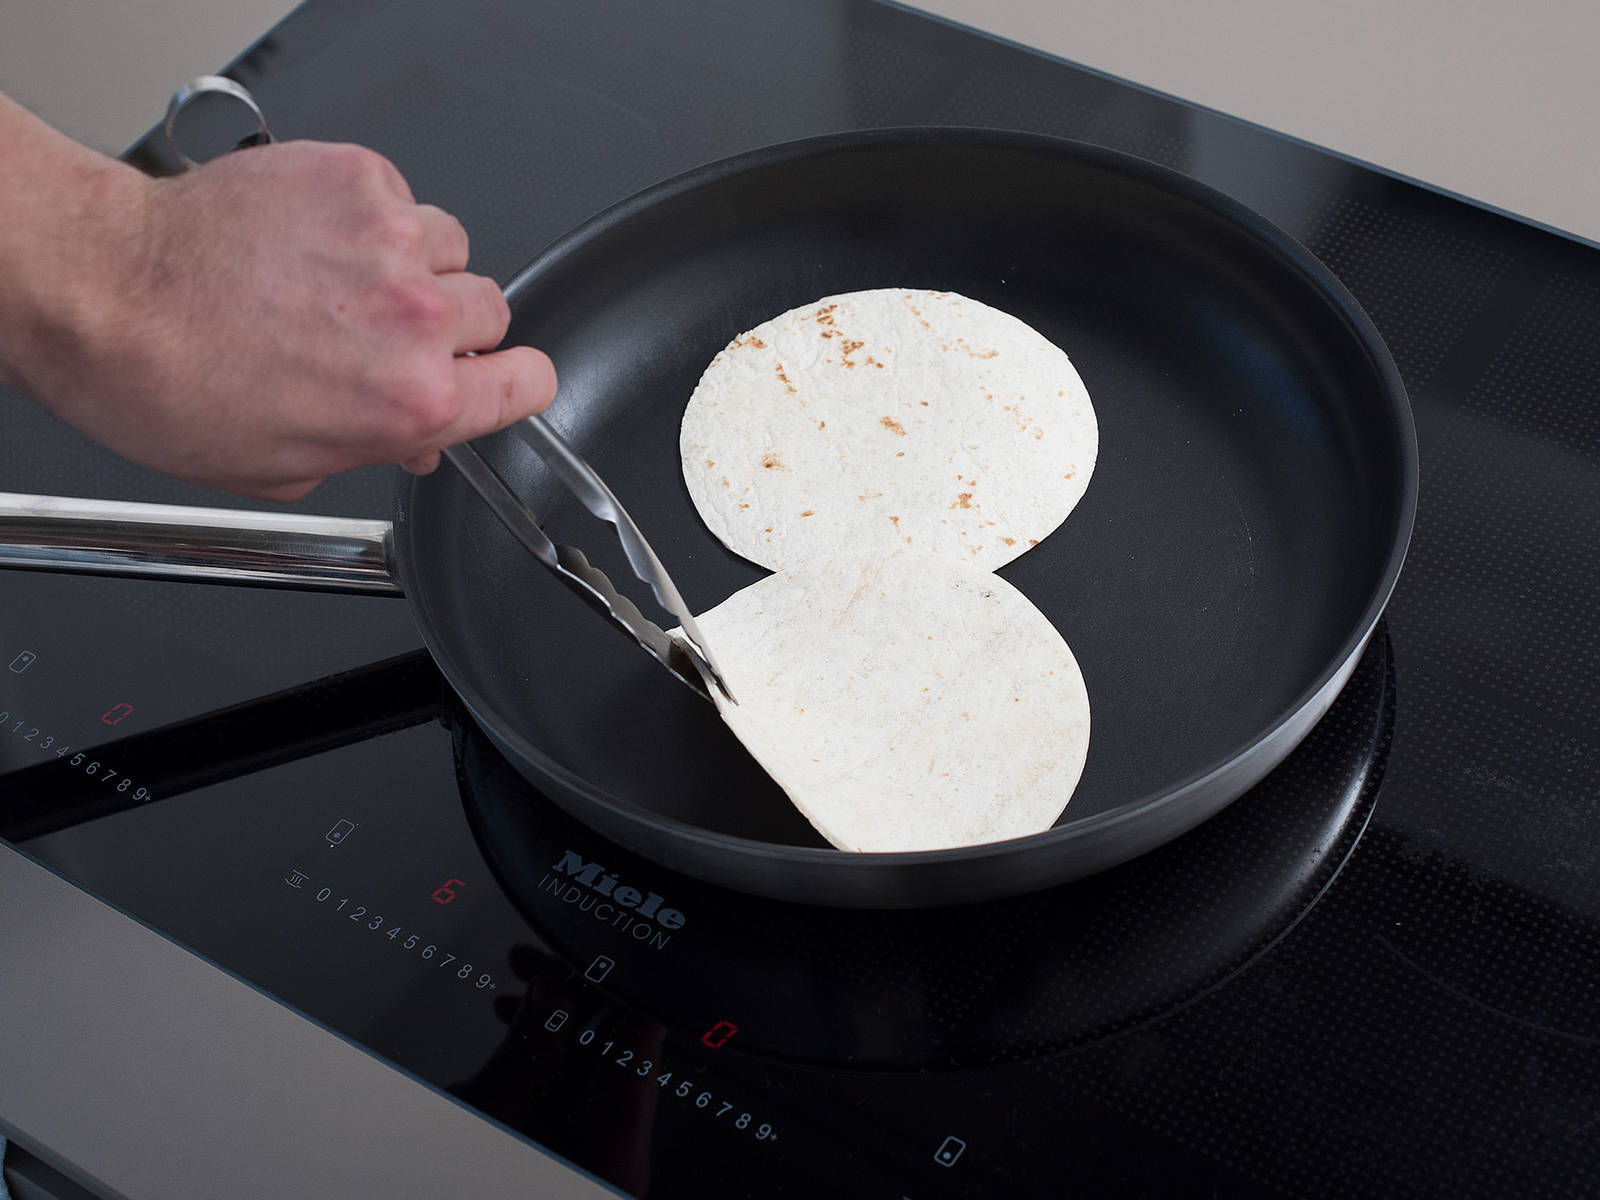 Heat a dry frying pan over medium heat and toast each tortilla on both sides for approx. 20 – 30 sec.